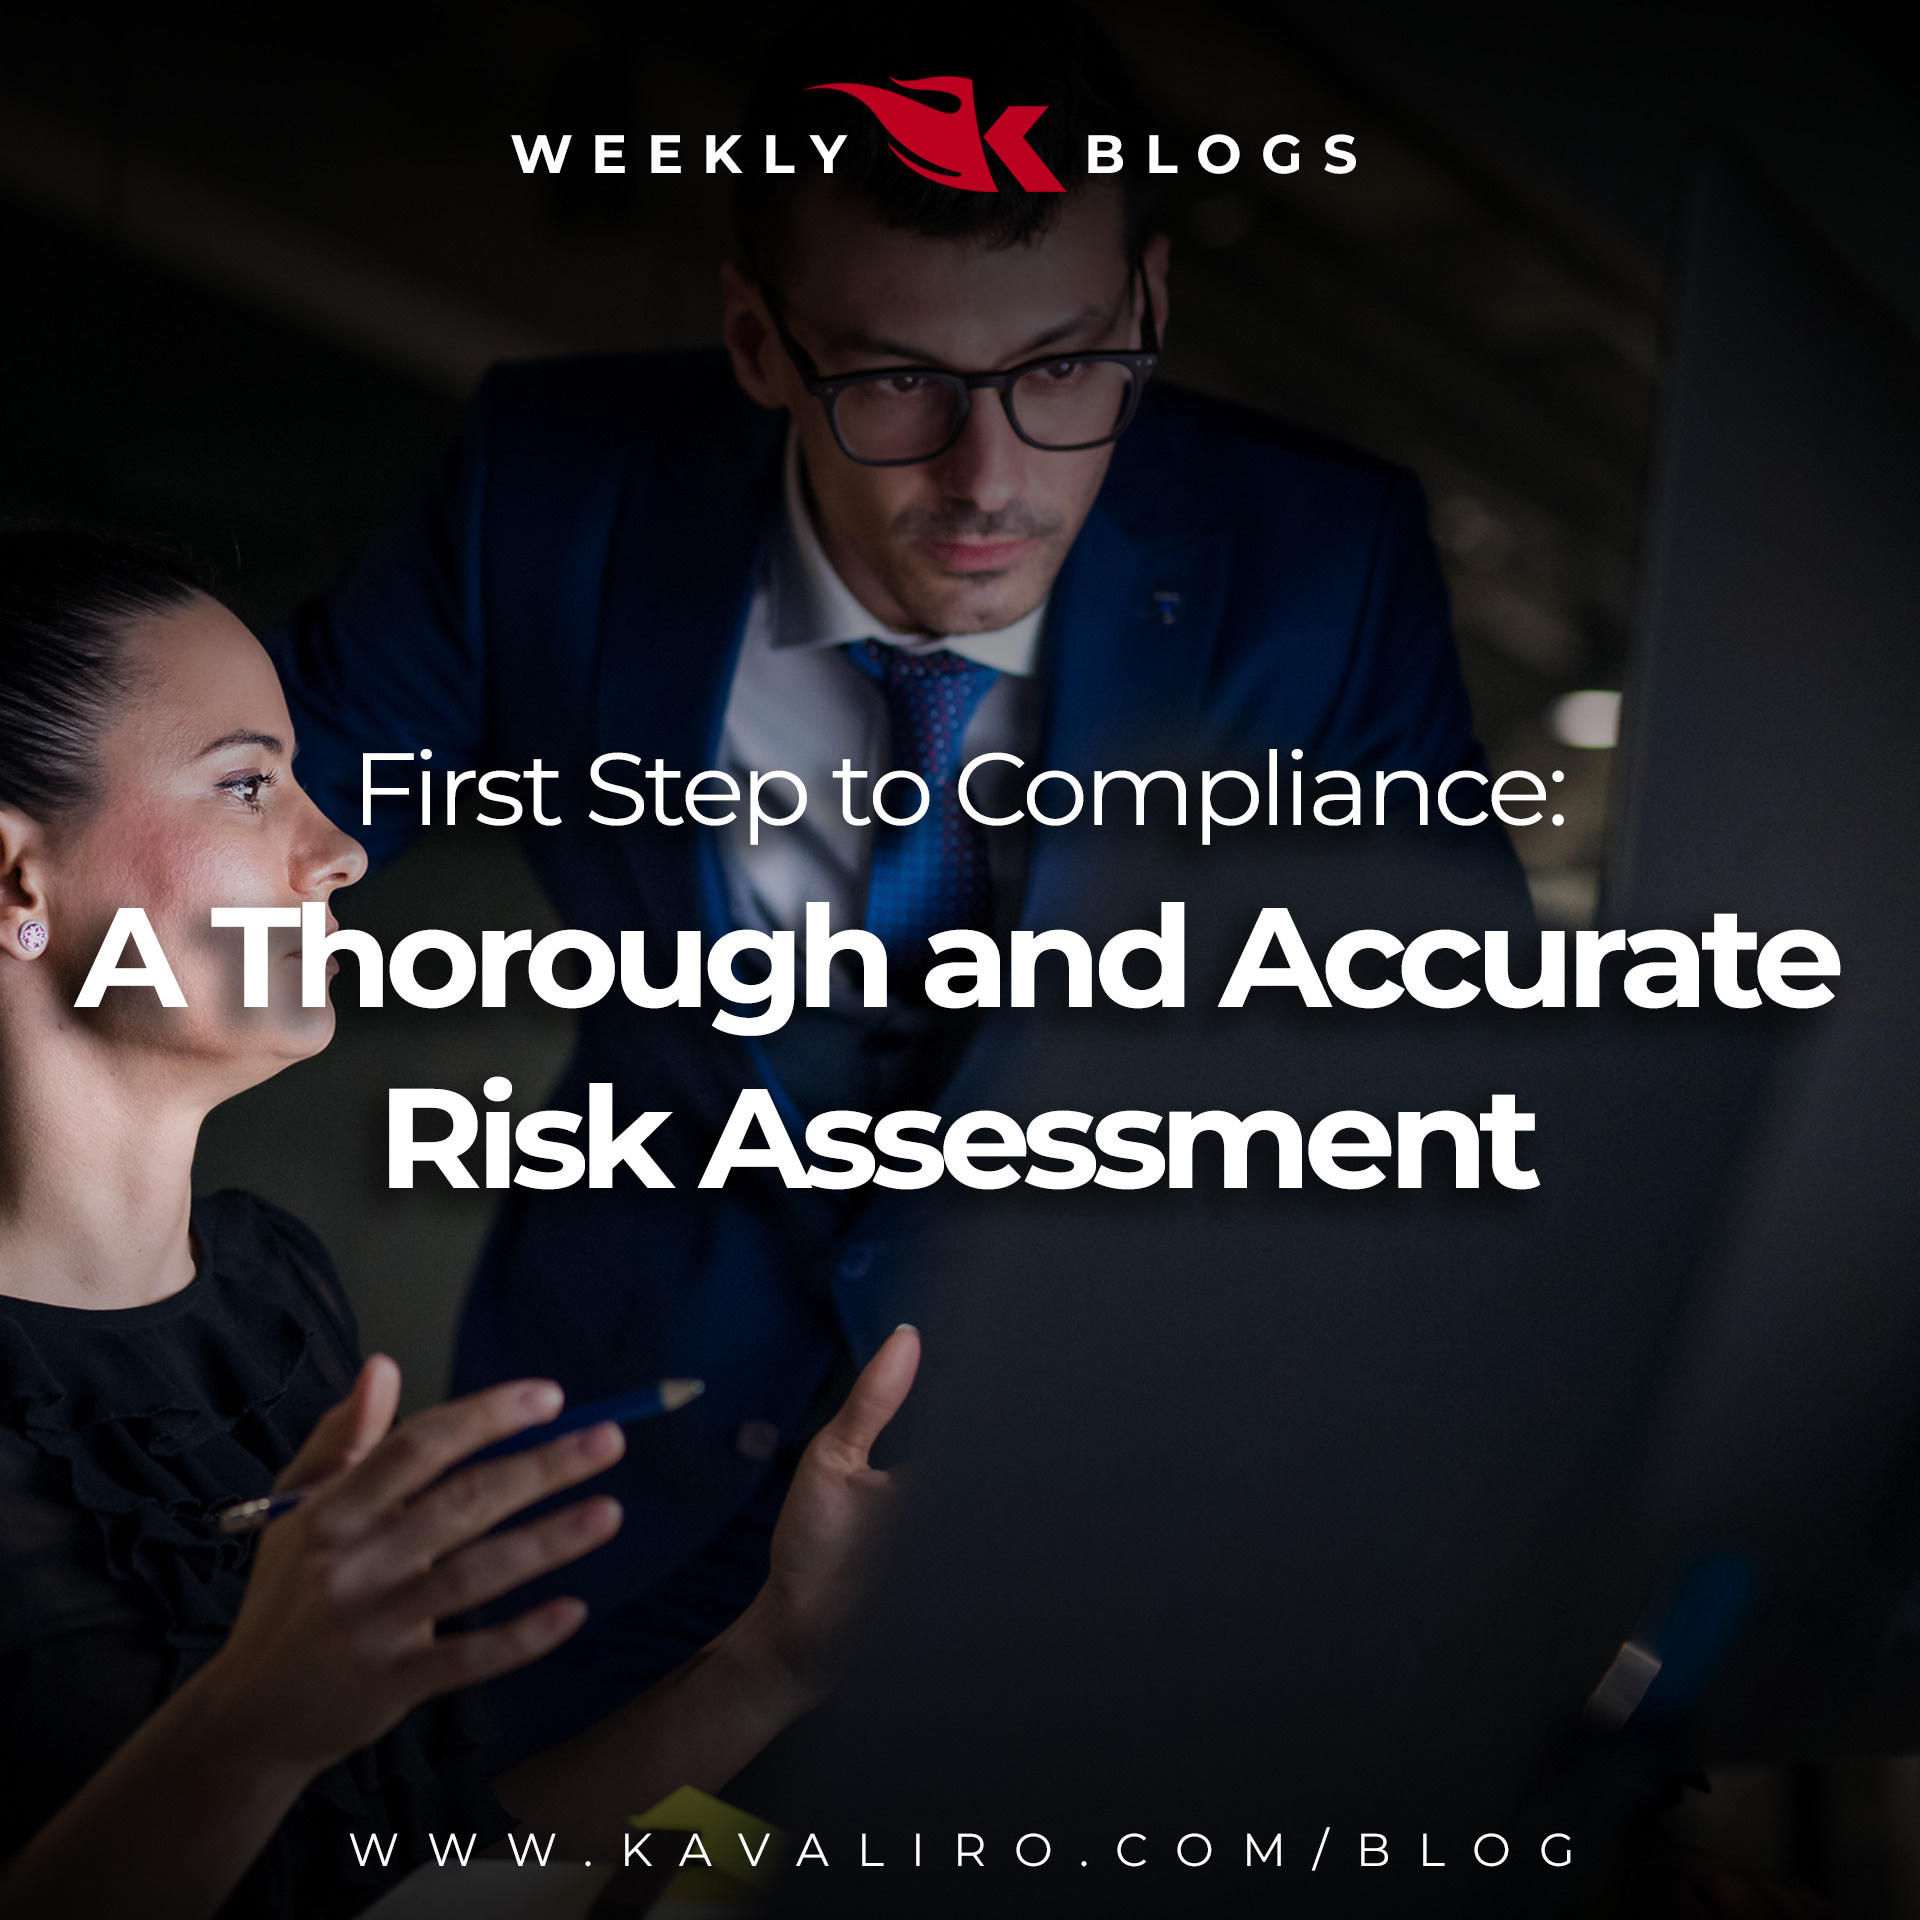 First Step to Compliance: A Thorough and Accurate Risk Assessment